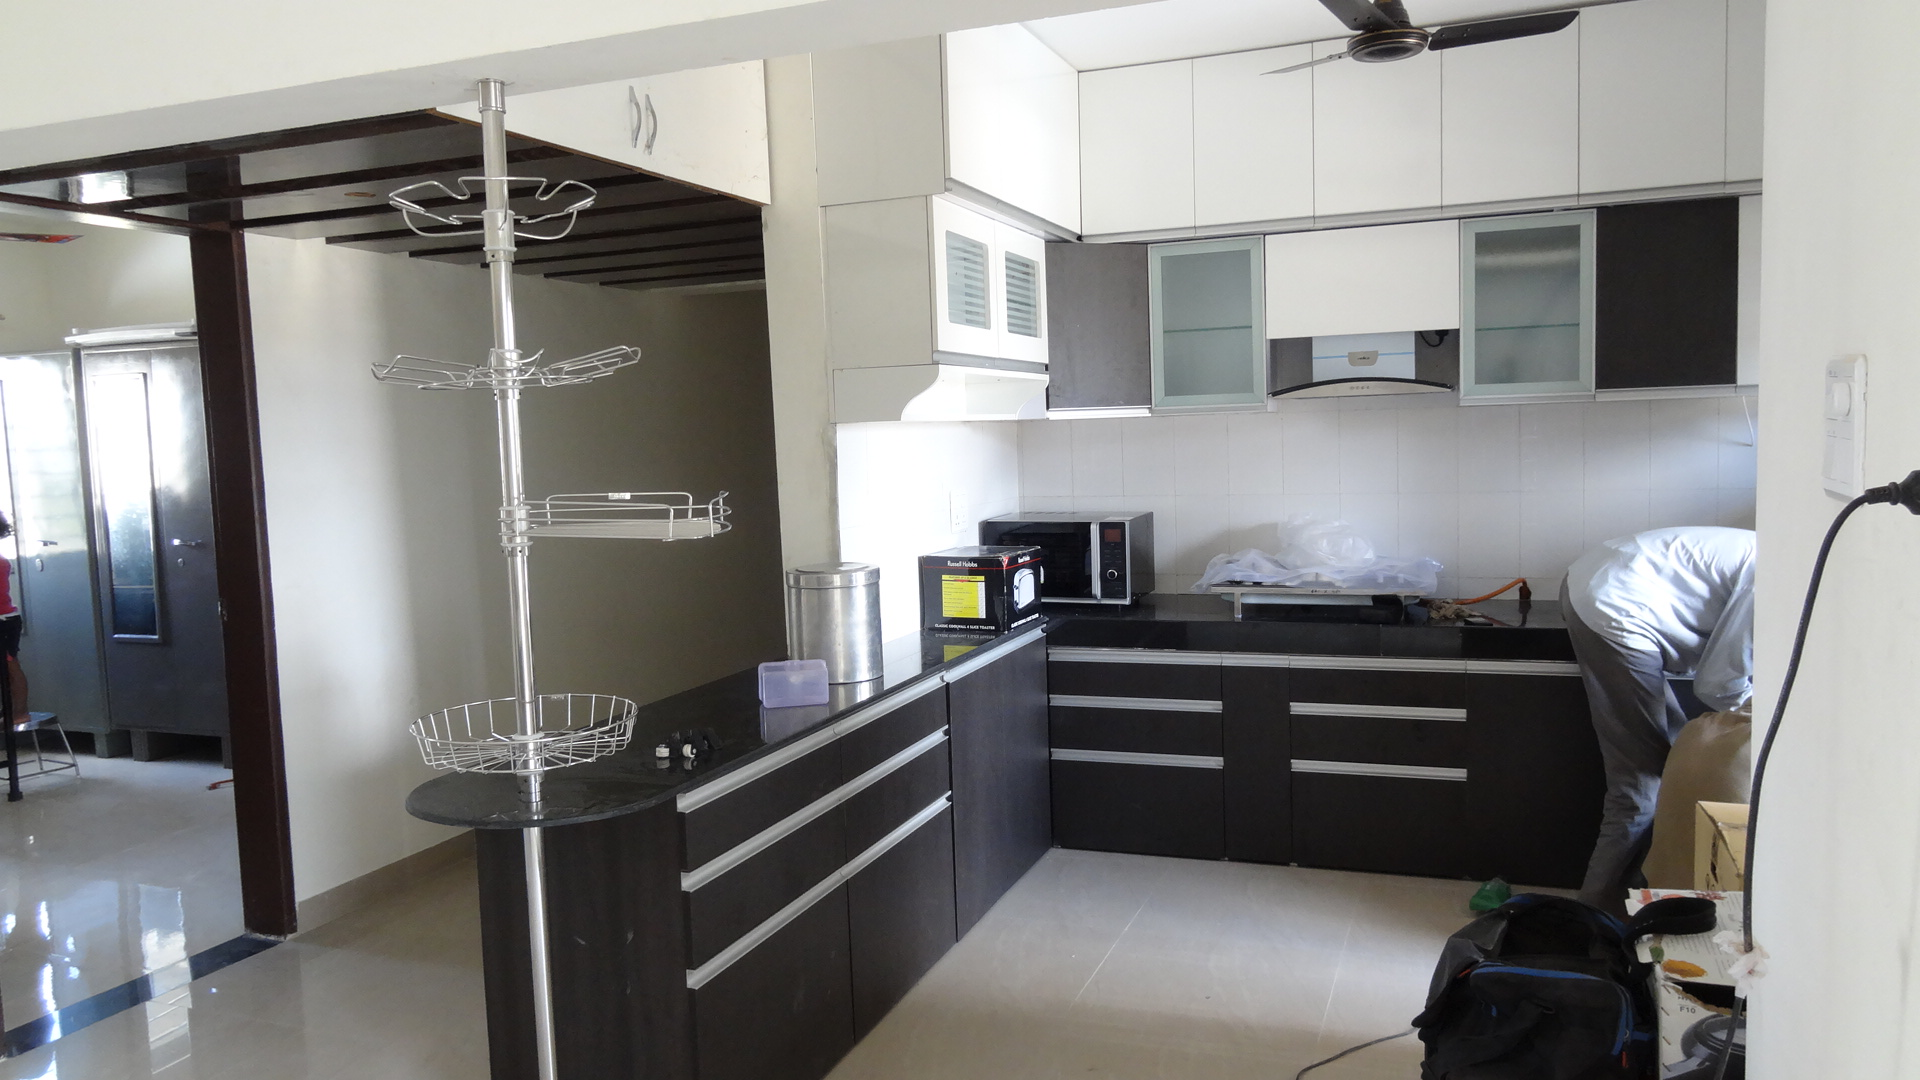 SHIRKE 39 S KITCHEN INTERIOR PUNE Review SHIRKE 39 S KITCHEN INTERIOR